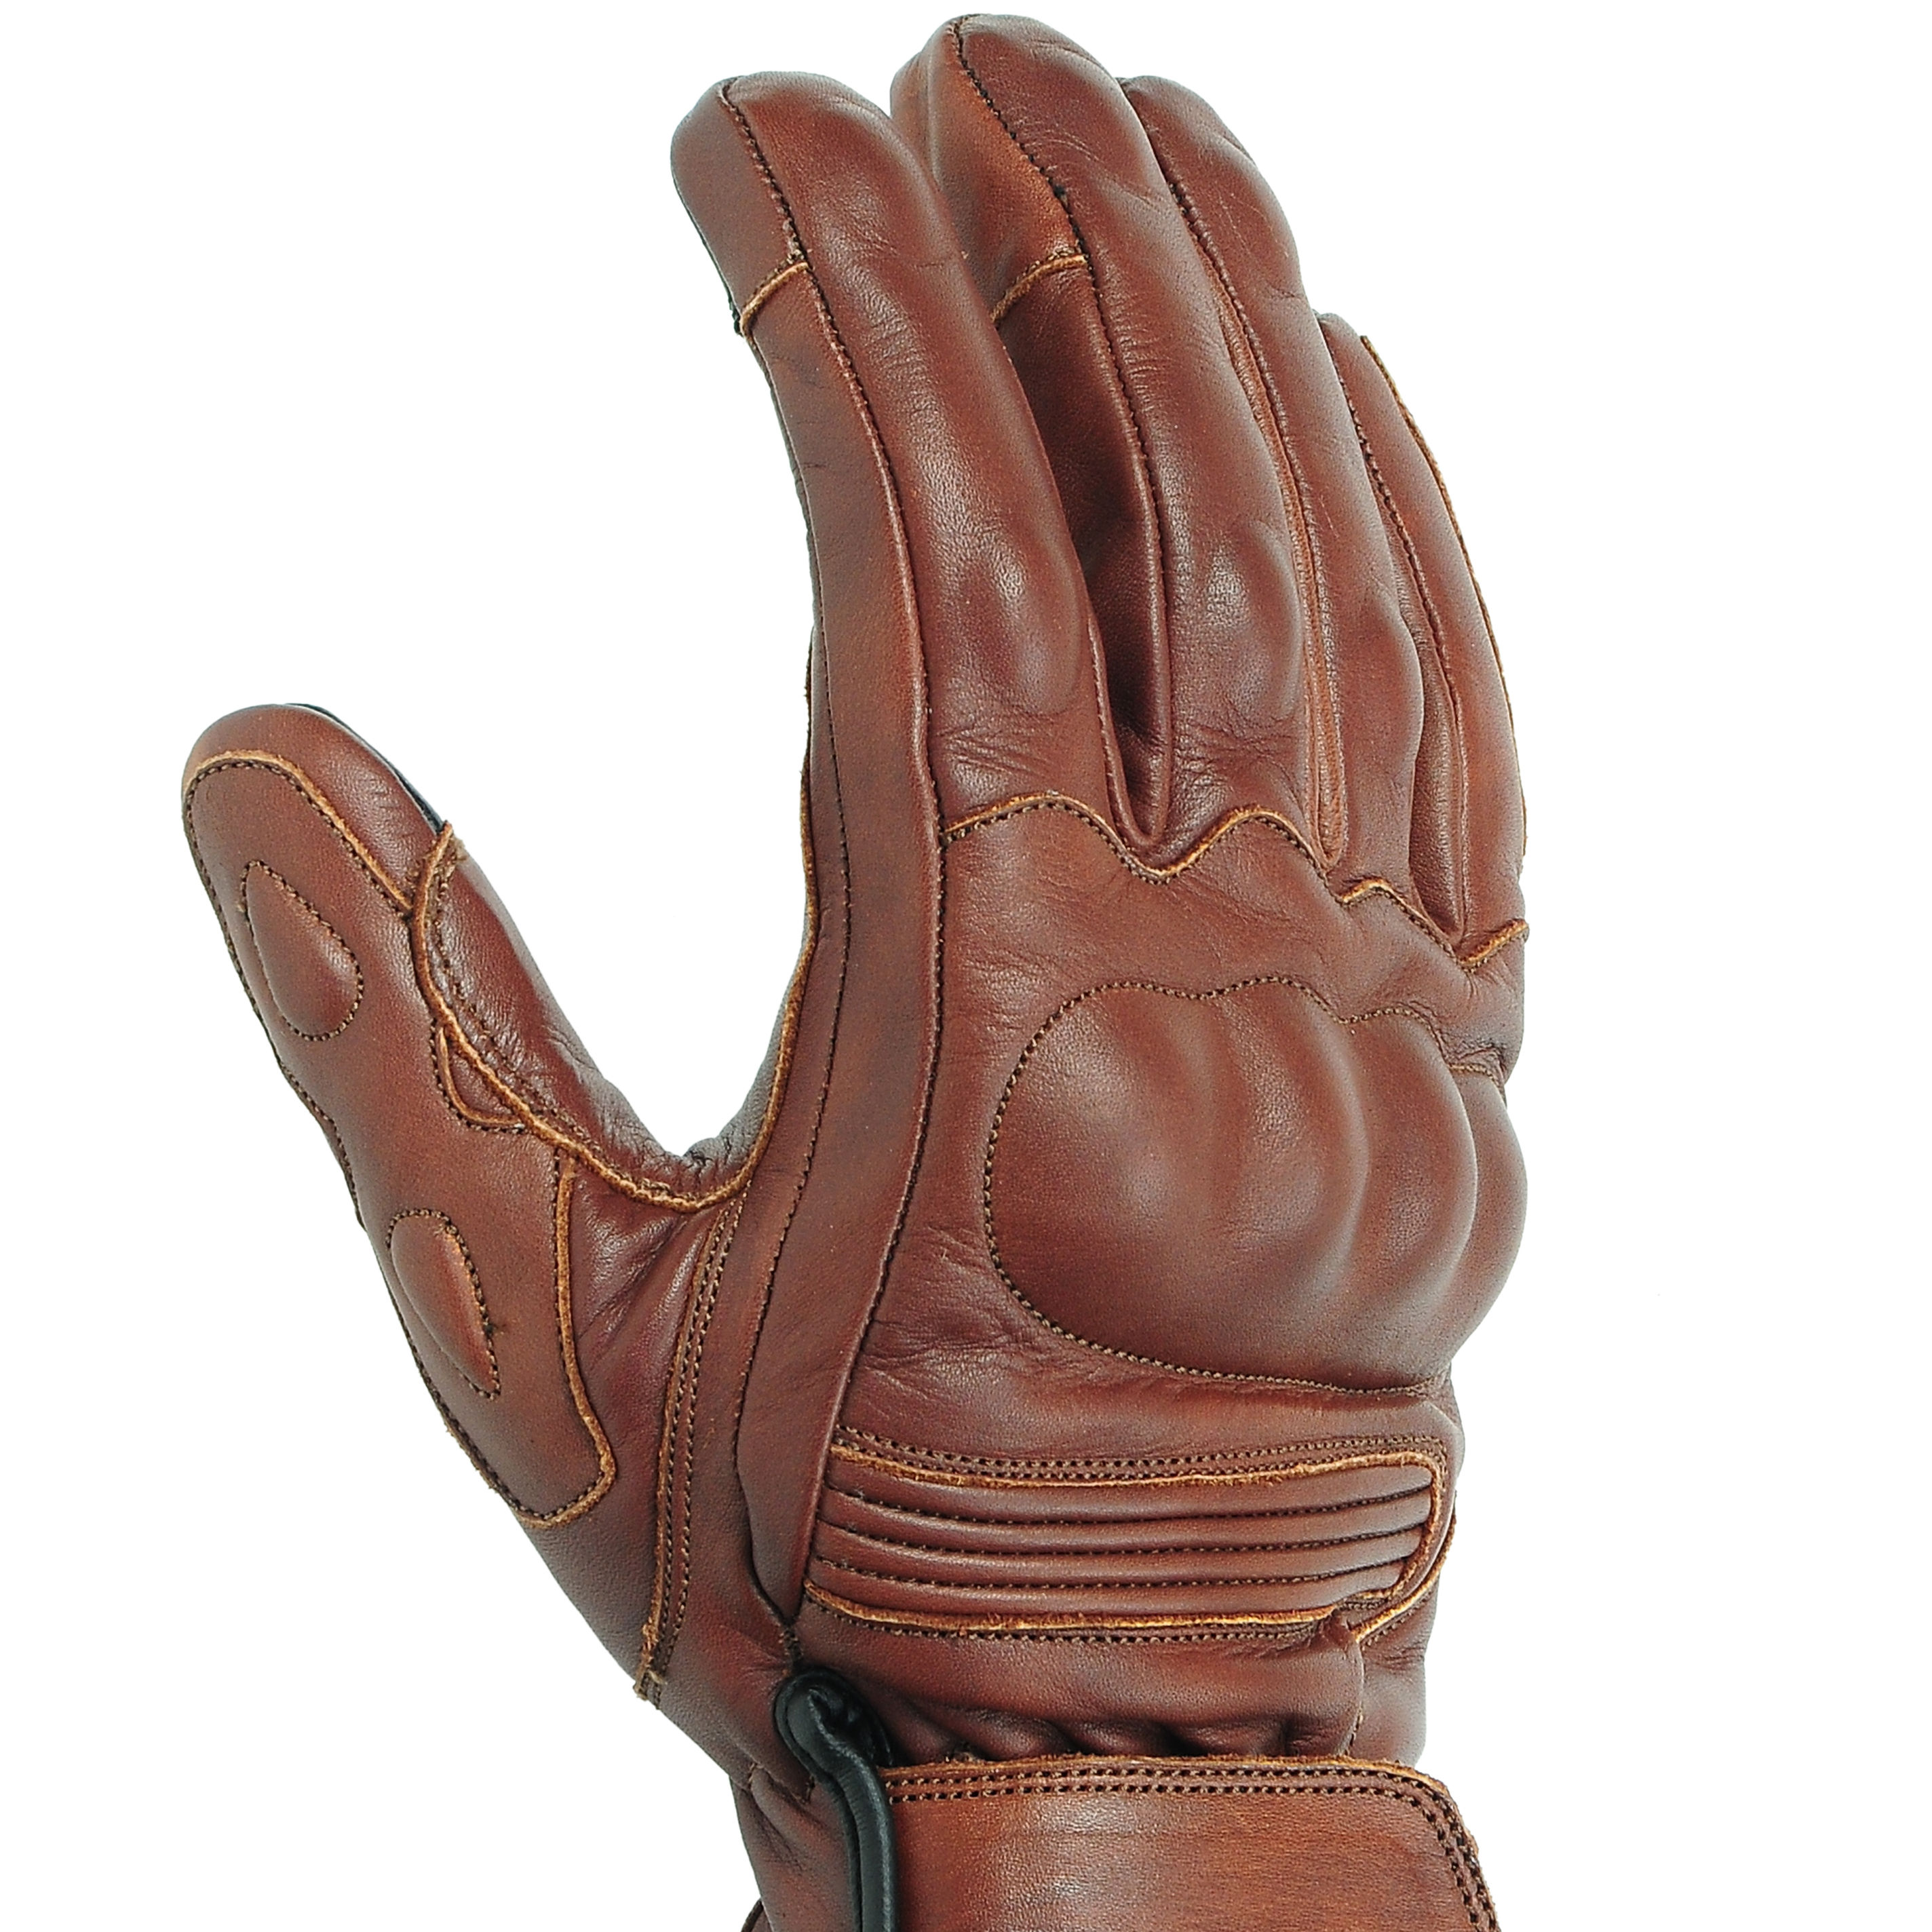 Touch Screen Genuine Leather Motorcycle / Motorbike / Motor Sports Men's Carbon Fiber Knuckle Protective Gloves